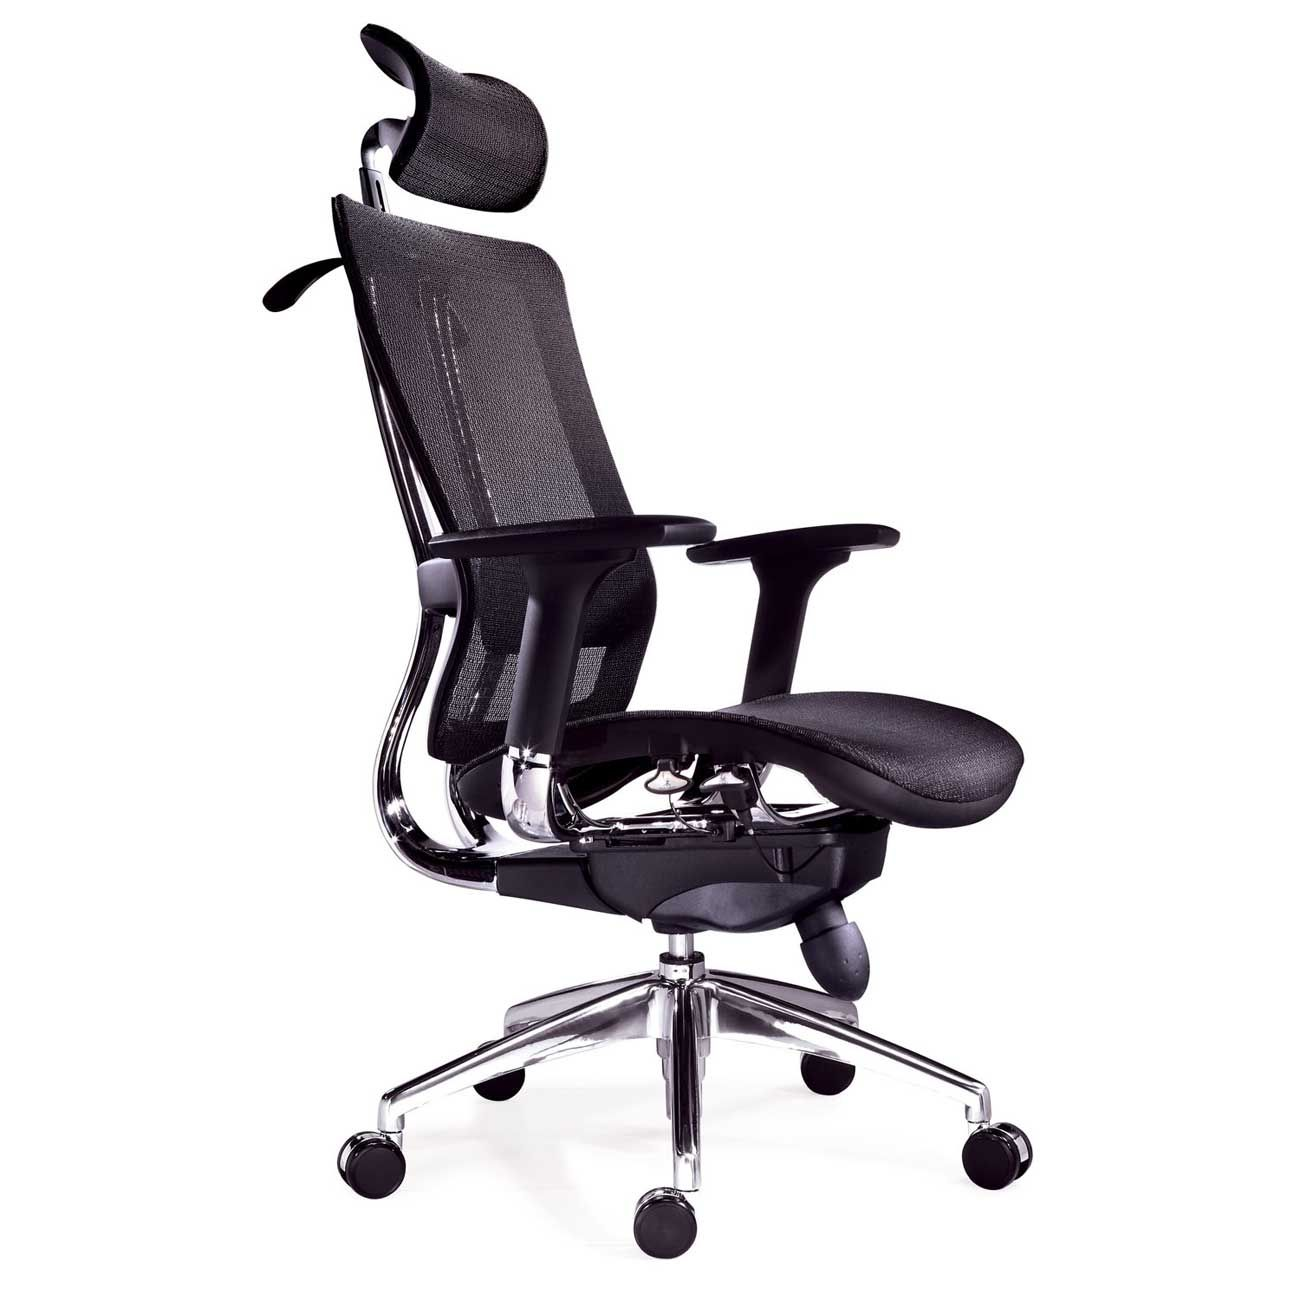 coolest office chair. Best Office Chair For Back And Neck Pain Coolest N